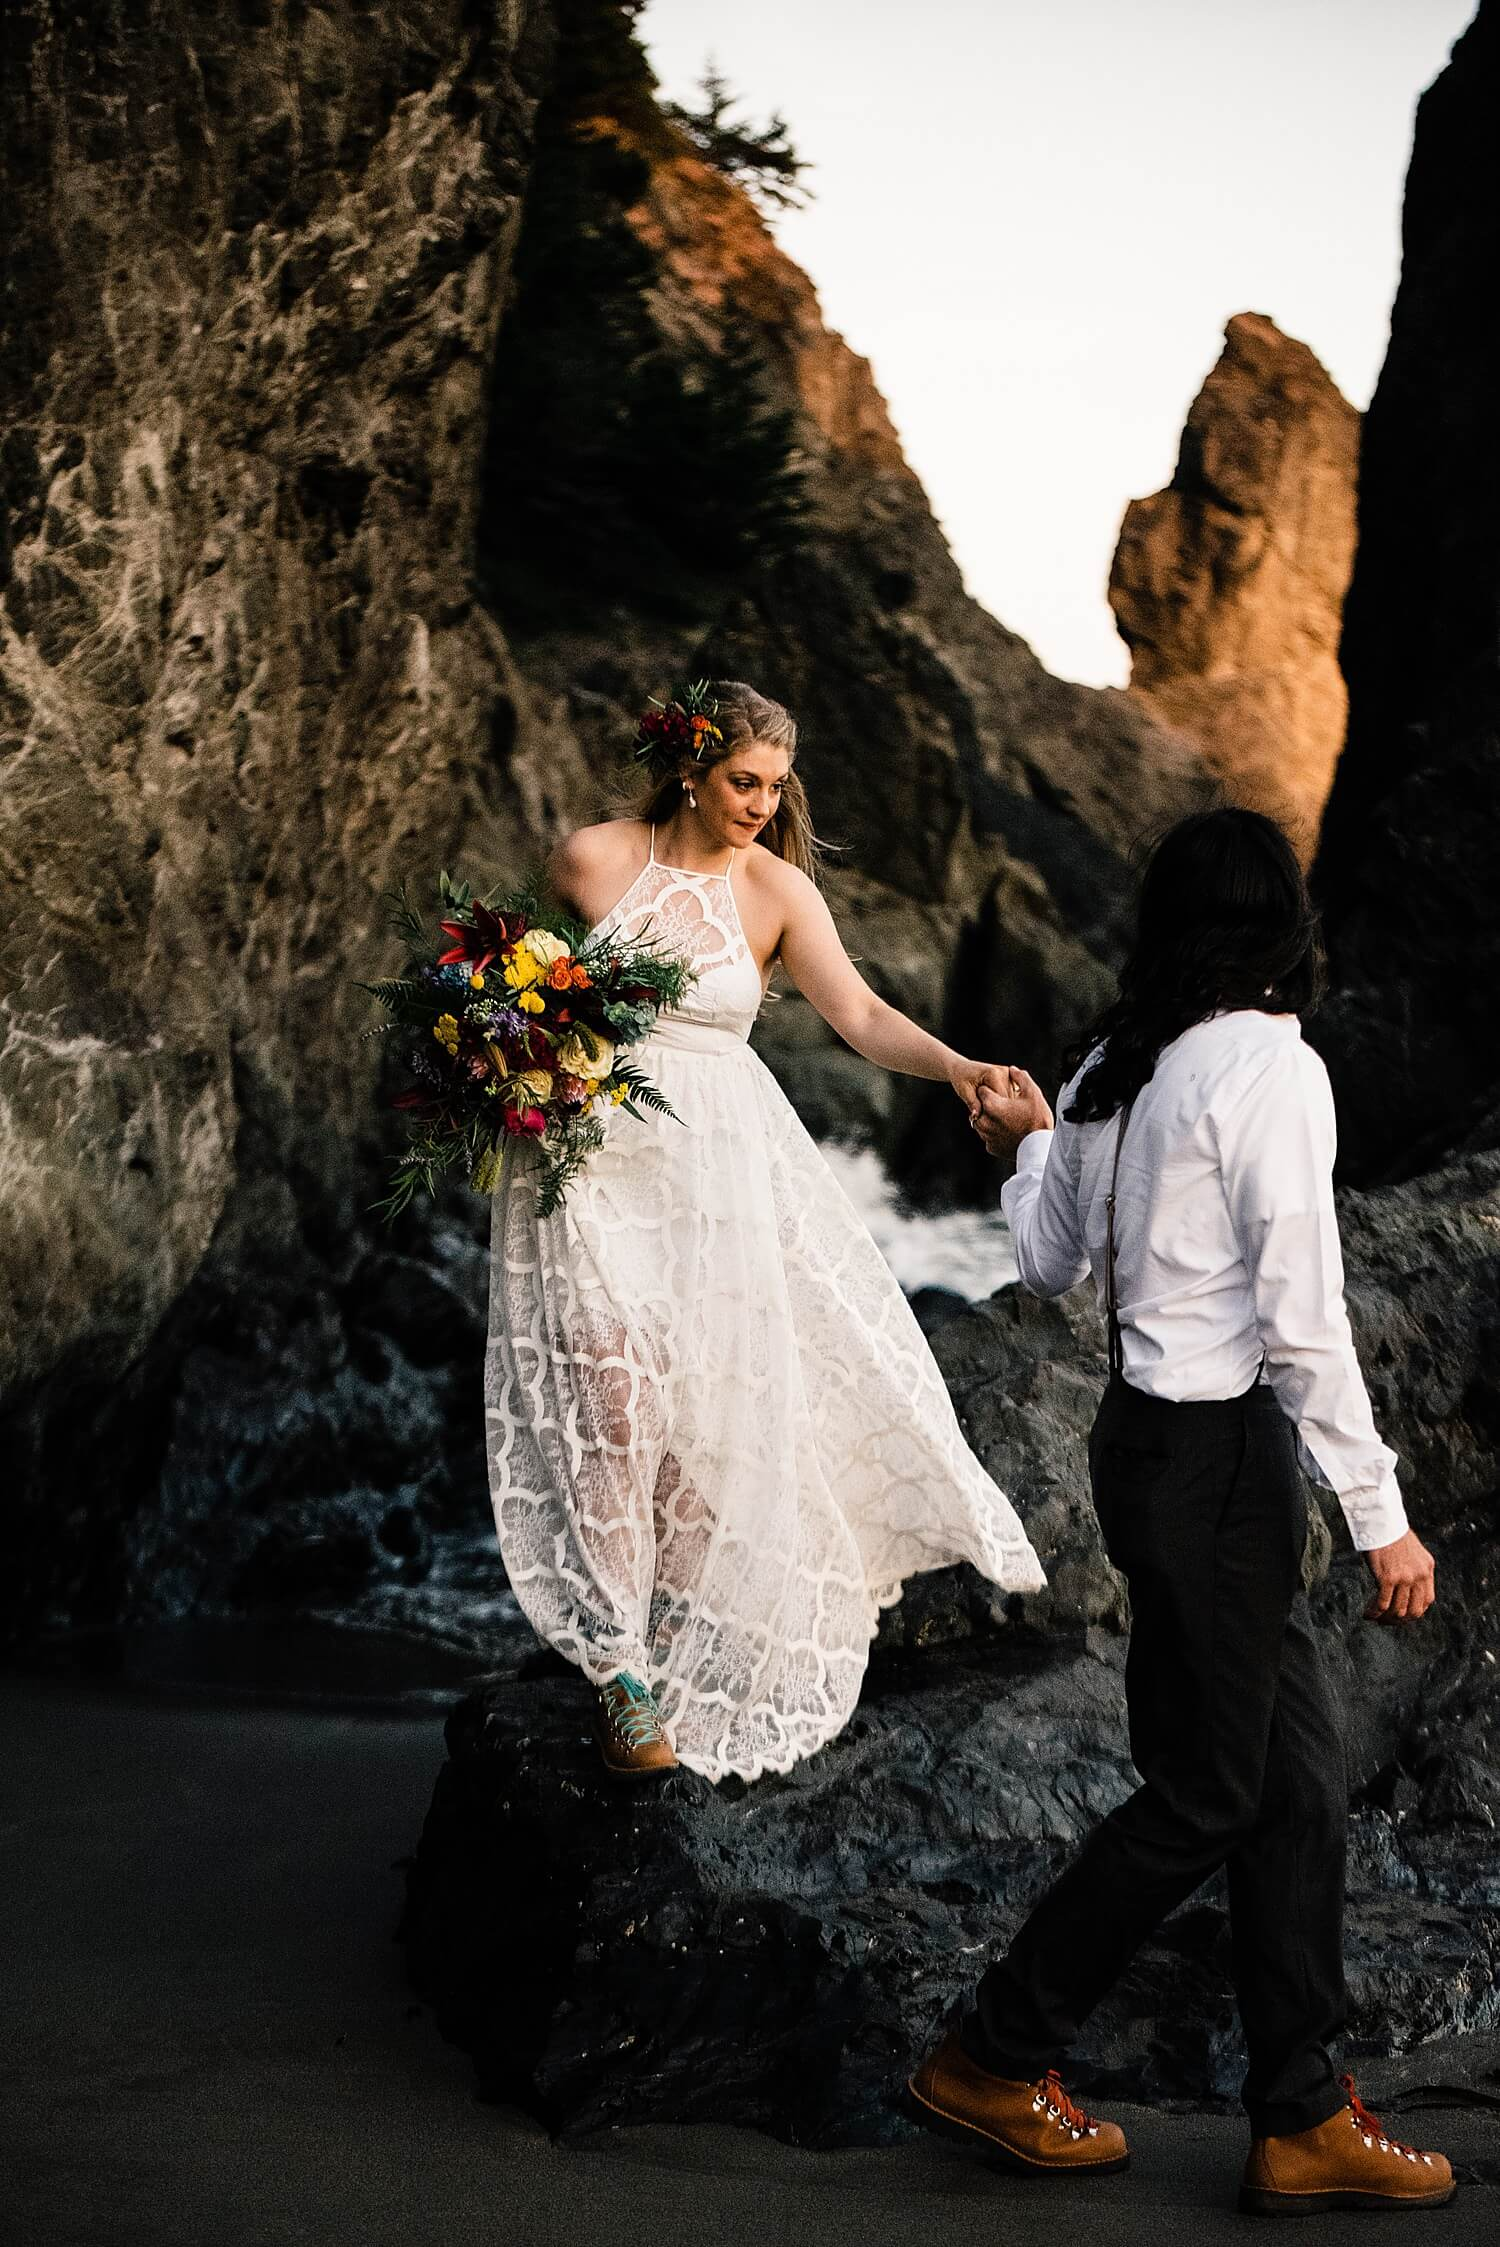 Oregon Coast Elopement,adventure elopement photographer,avenue of the giants,boho bride,california,coastal redwoods,elope,elopement,fire jumping,intimate wedding,jedediah smith,jedediah smith redwoods,national park,norcal,oregon coast,oregon coast wedding,prairie creek,redwoods,redwoods elopement,redwoods wedding,small wedding,solstice wedding,state park,